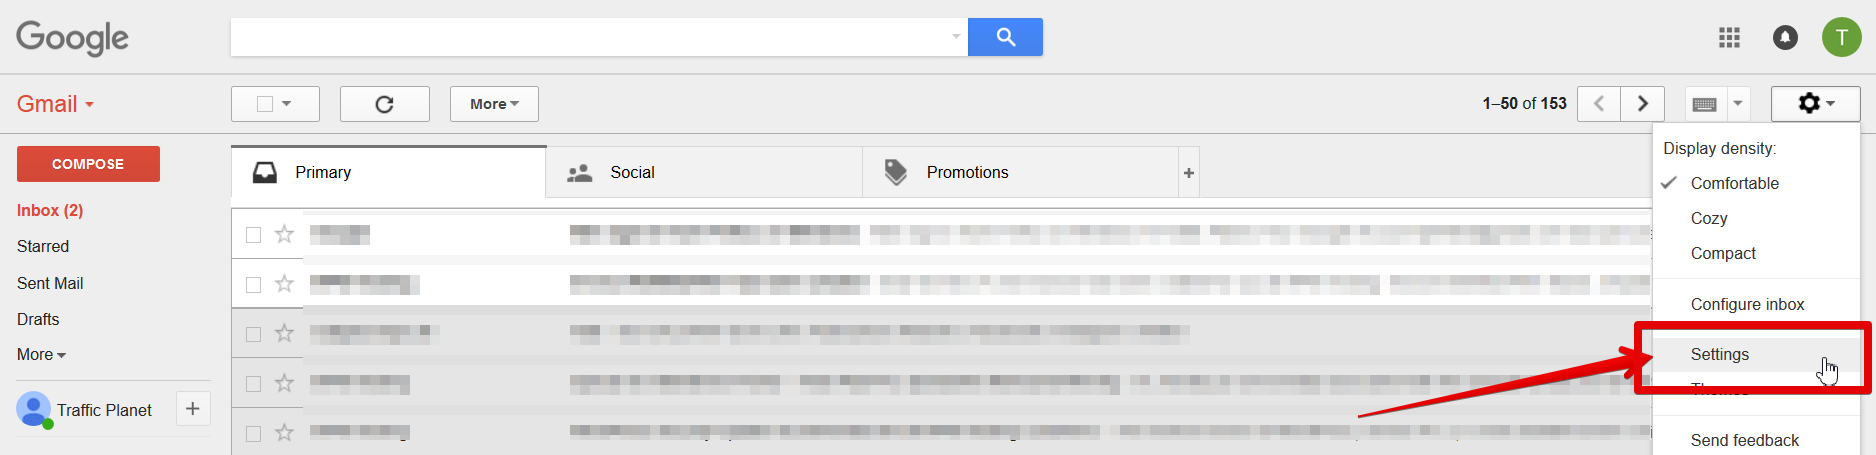 Find your Gmail Settings here